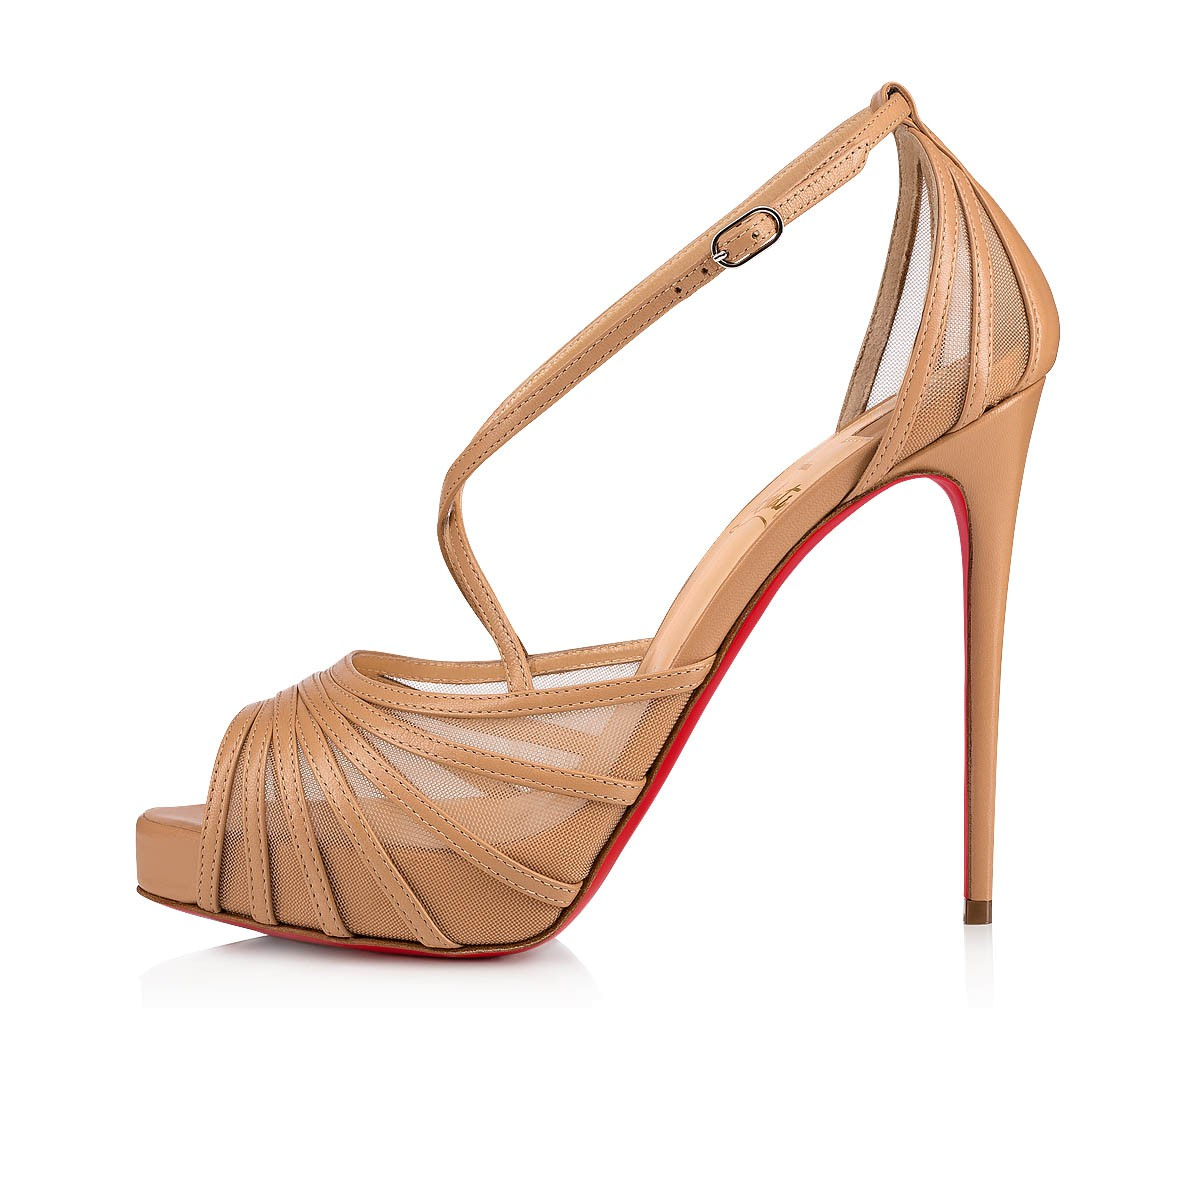 Shoes - Filamenta - Christian Louboutin